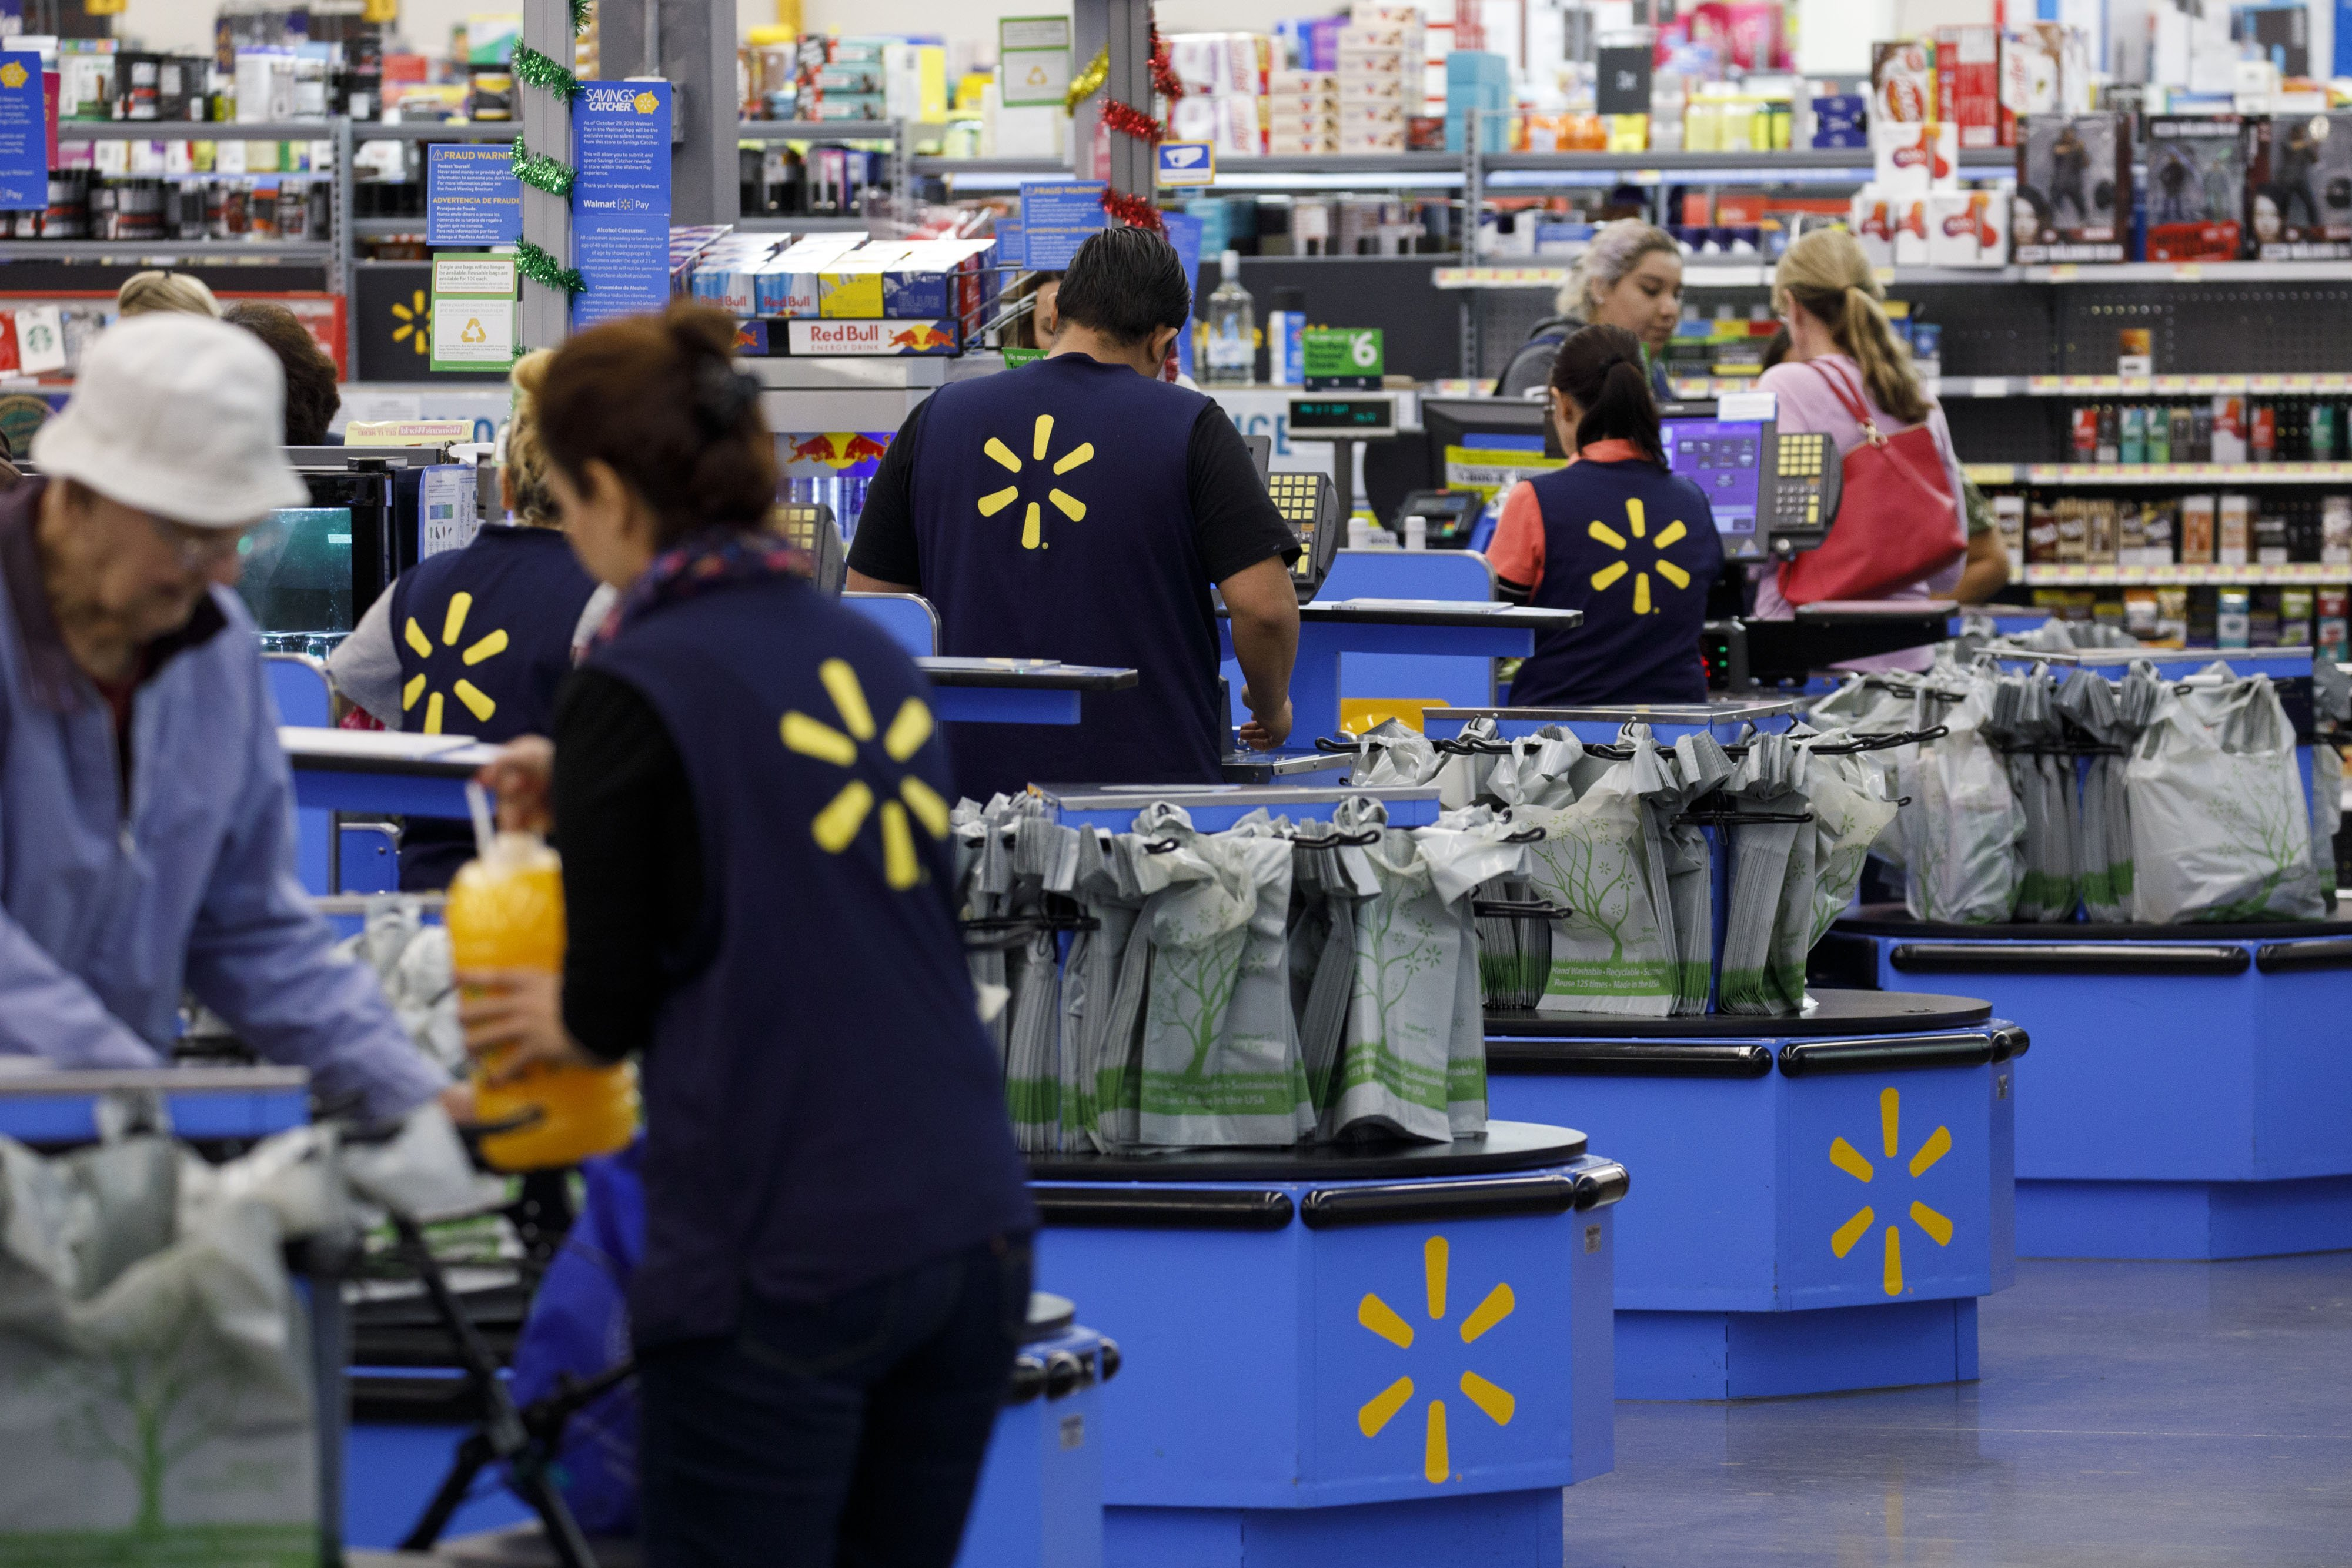 Walmart's new Capital One credit card matches Amazon's Prime card deal